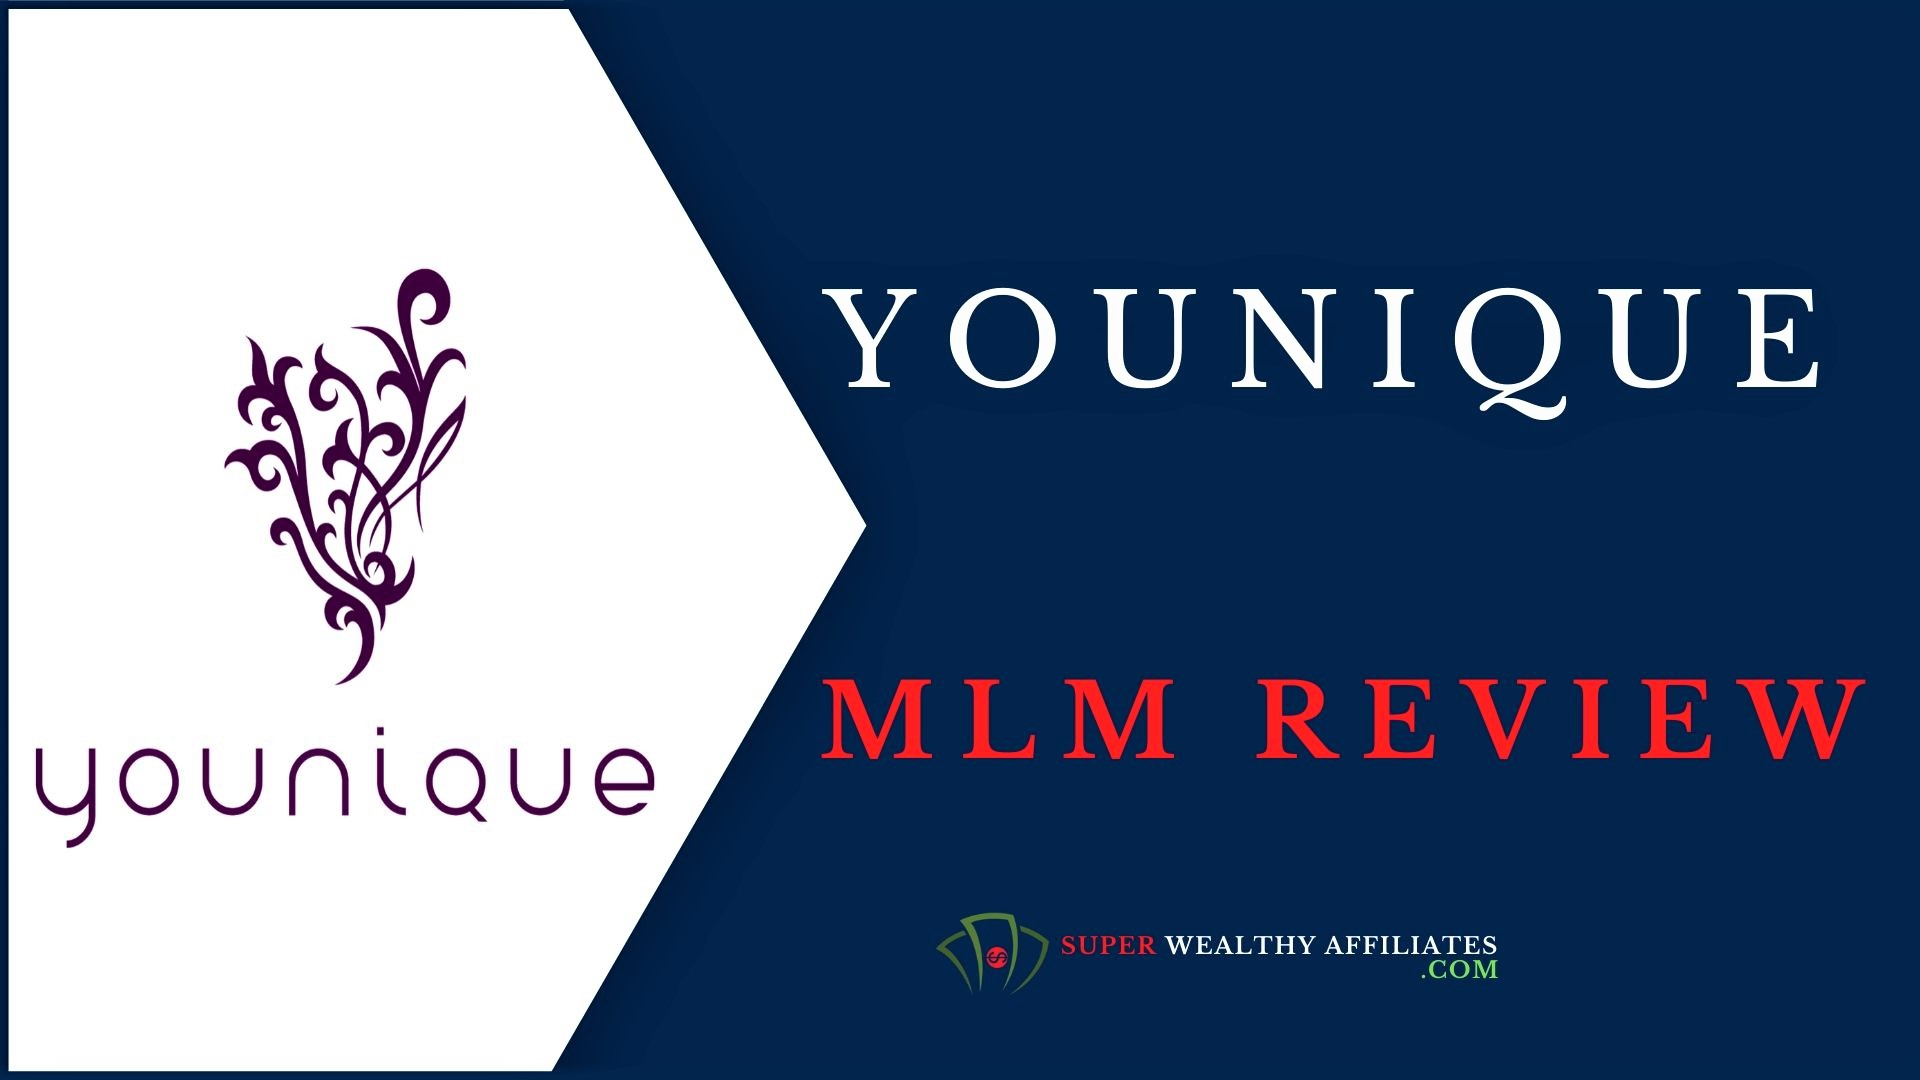 Super-wealthy-Affiliates-Younique-MLM-Review